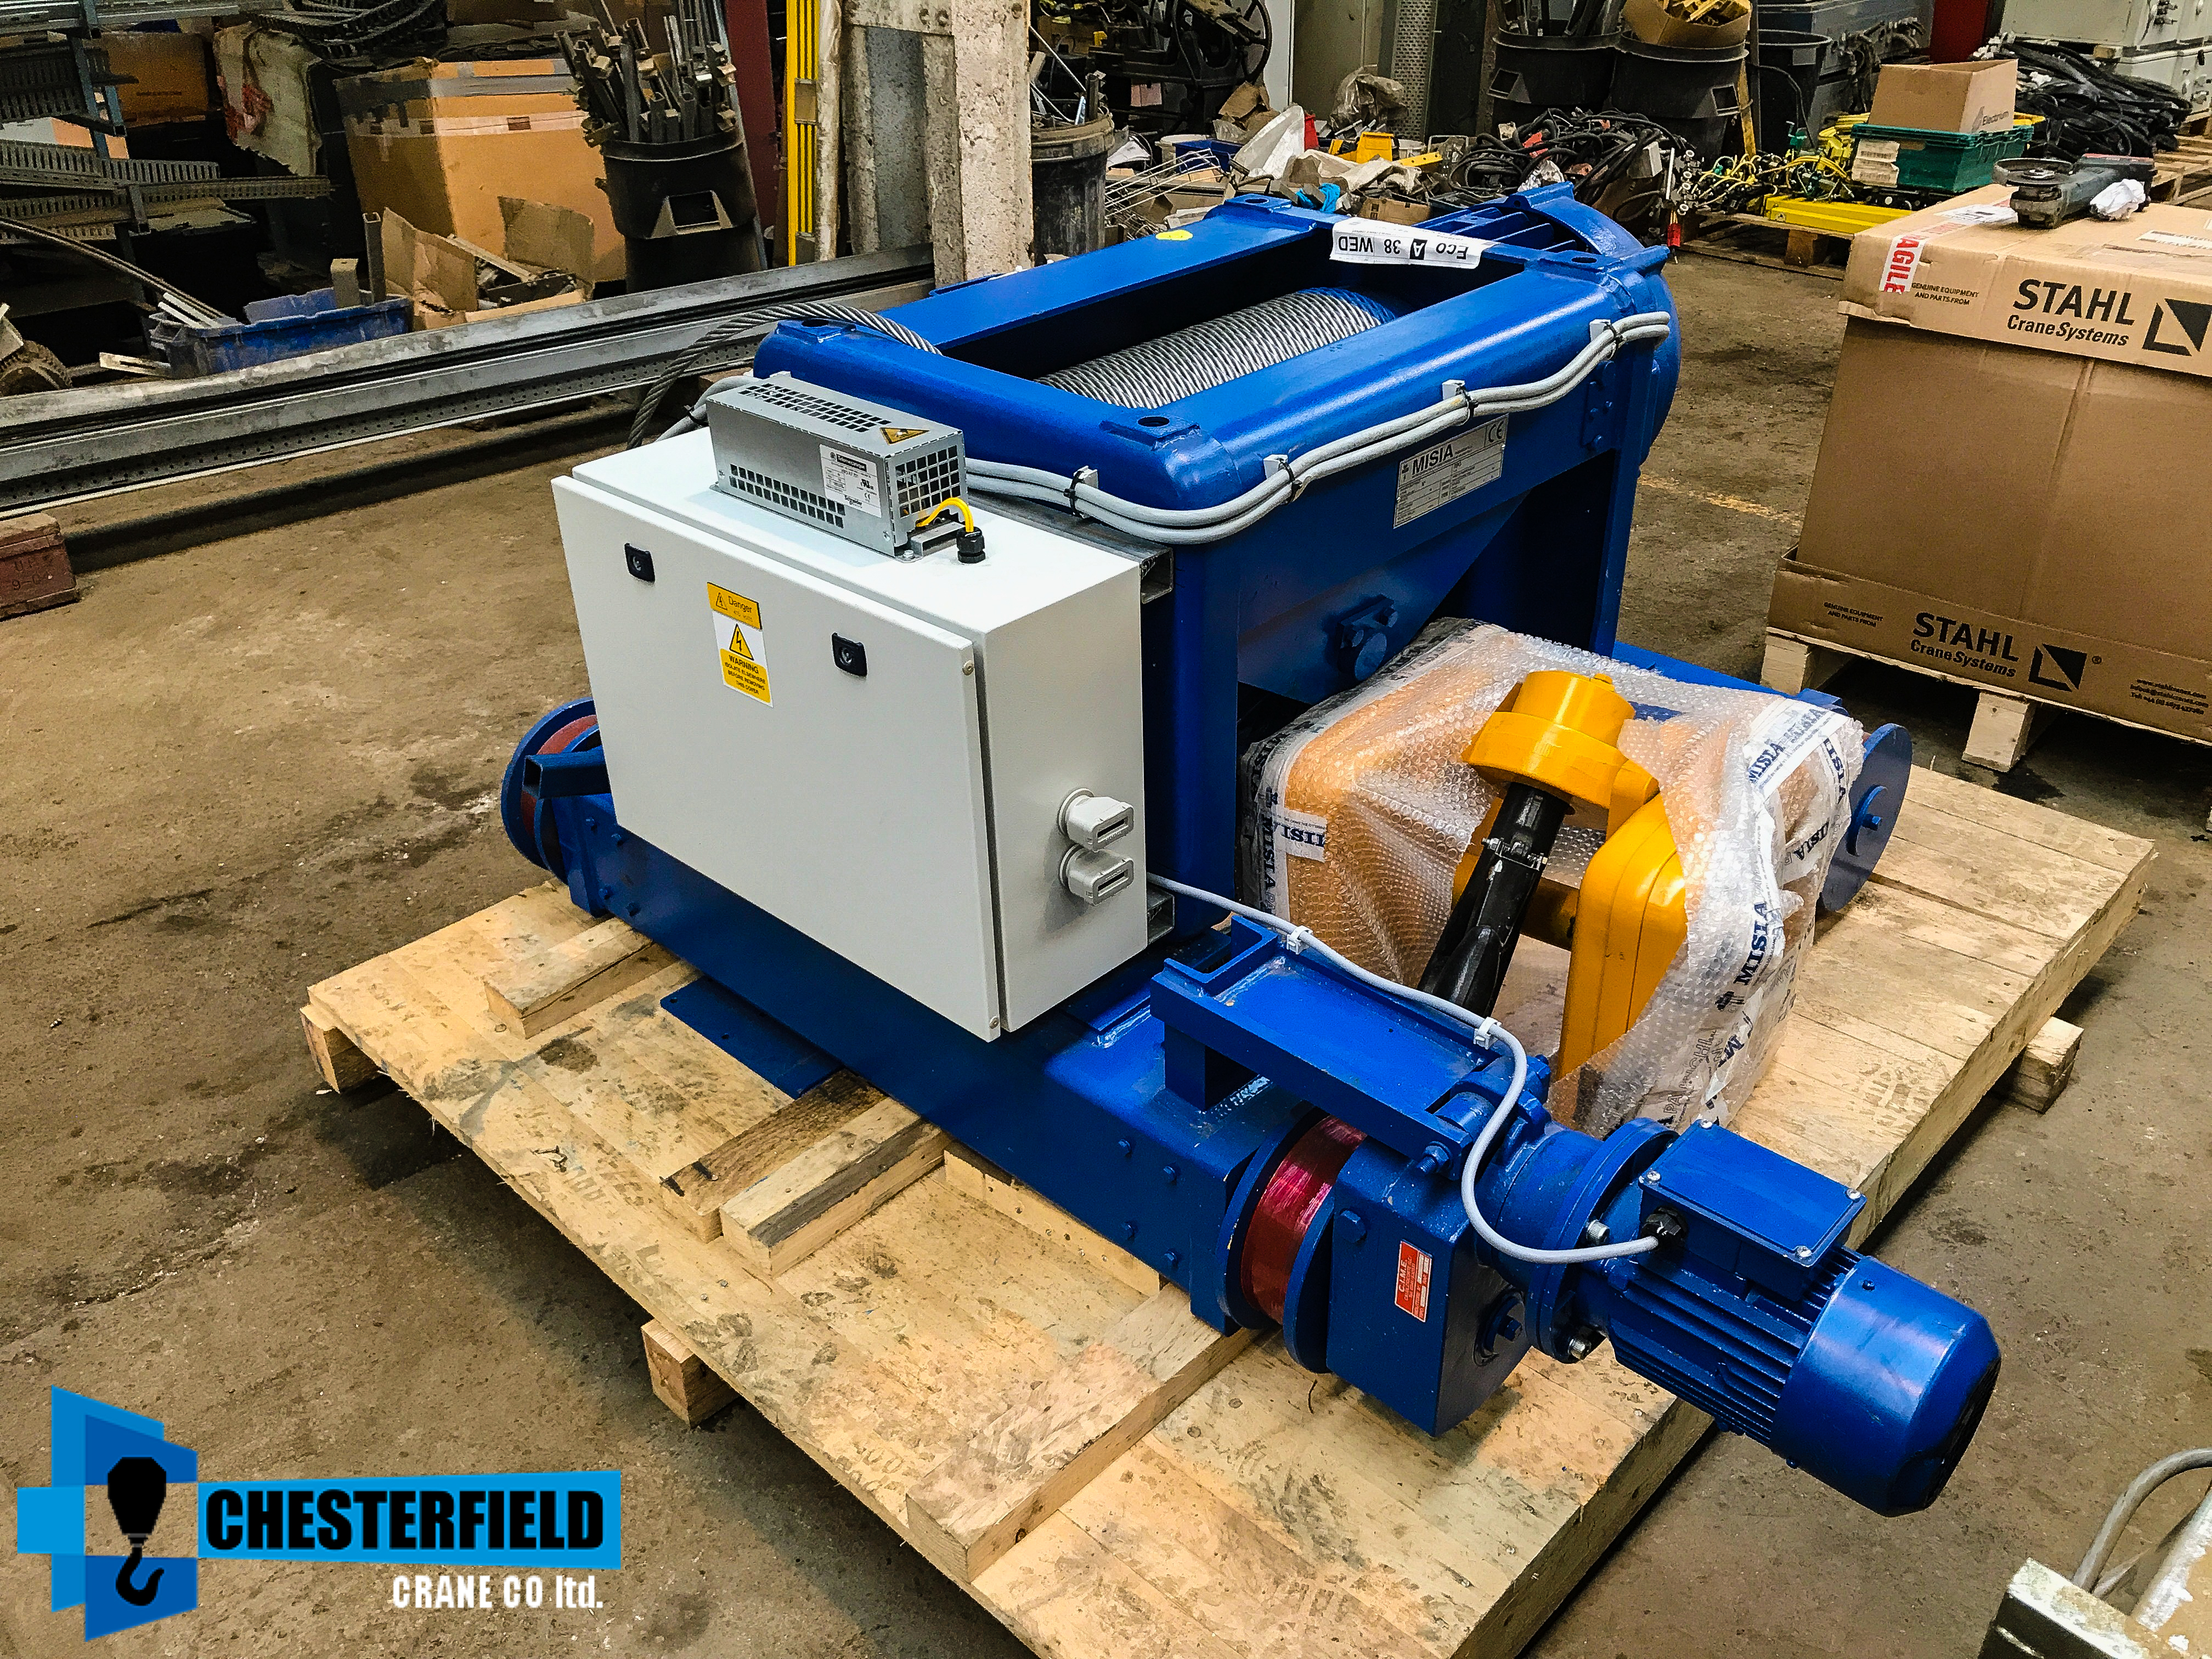 Wire Rope Hoist Electric Mobile For Sale Uk Chesterfieldcrane Stahl Wiring Diagram Brand New Misia 125 Tonne M6 Top Mounted